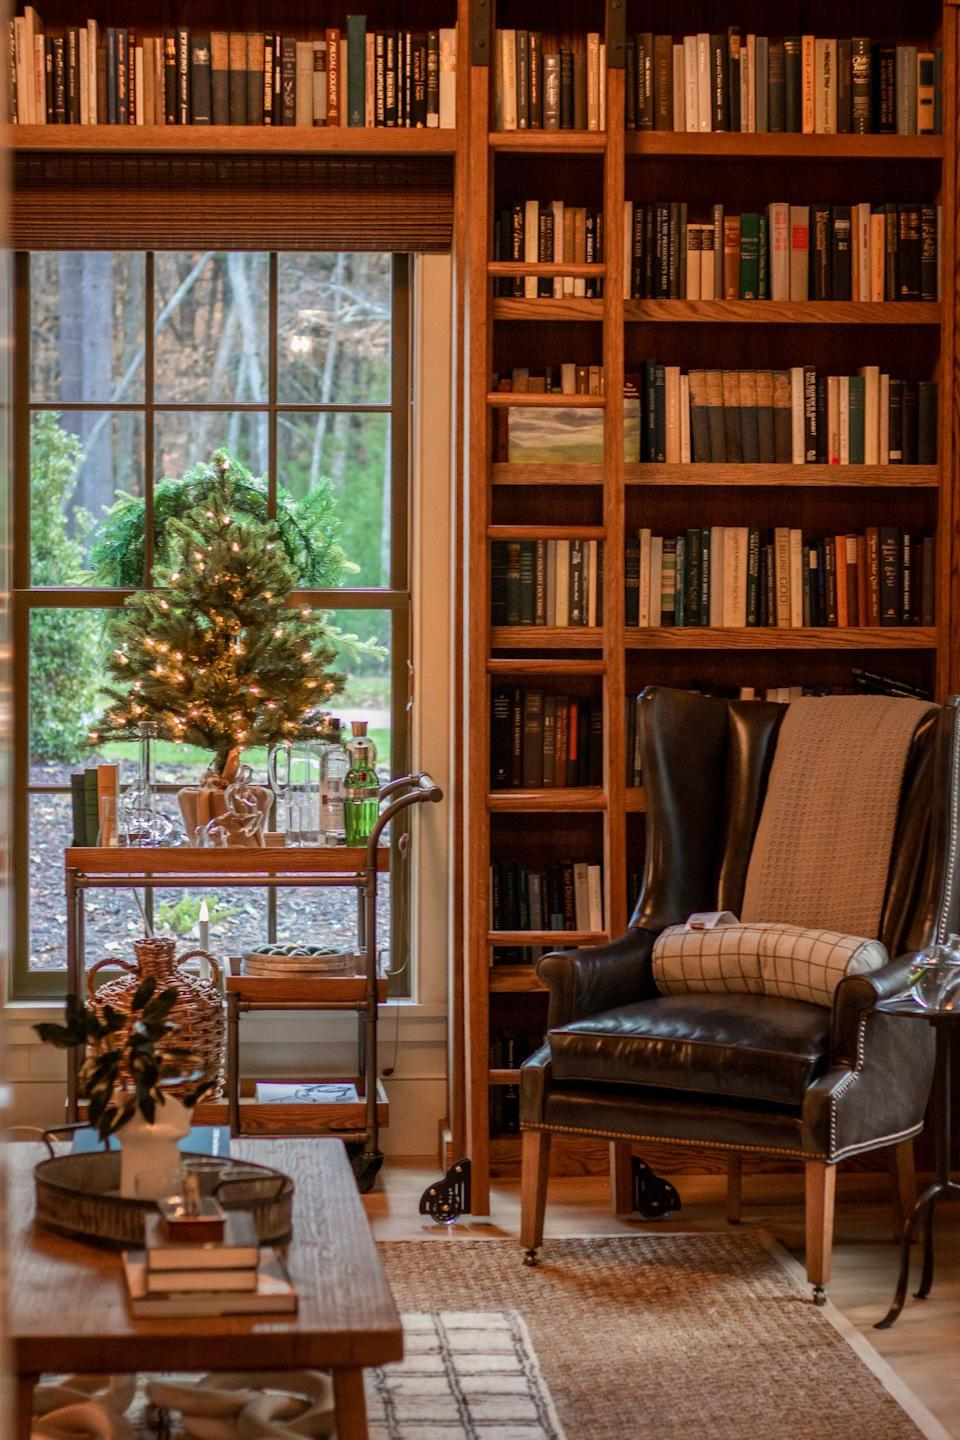 <p>The library already feels festive with its high-gloss green ceiling. A twinkling tabletop tree set on the bar cart and magnolia clippings arranged in a vase on the coffee table feel just right.</p>